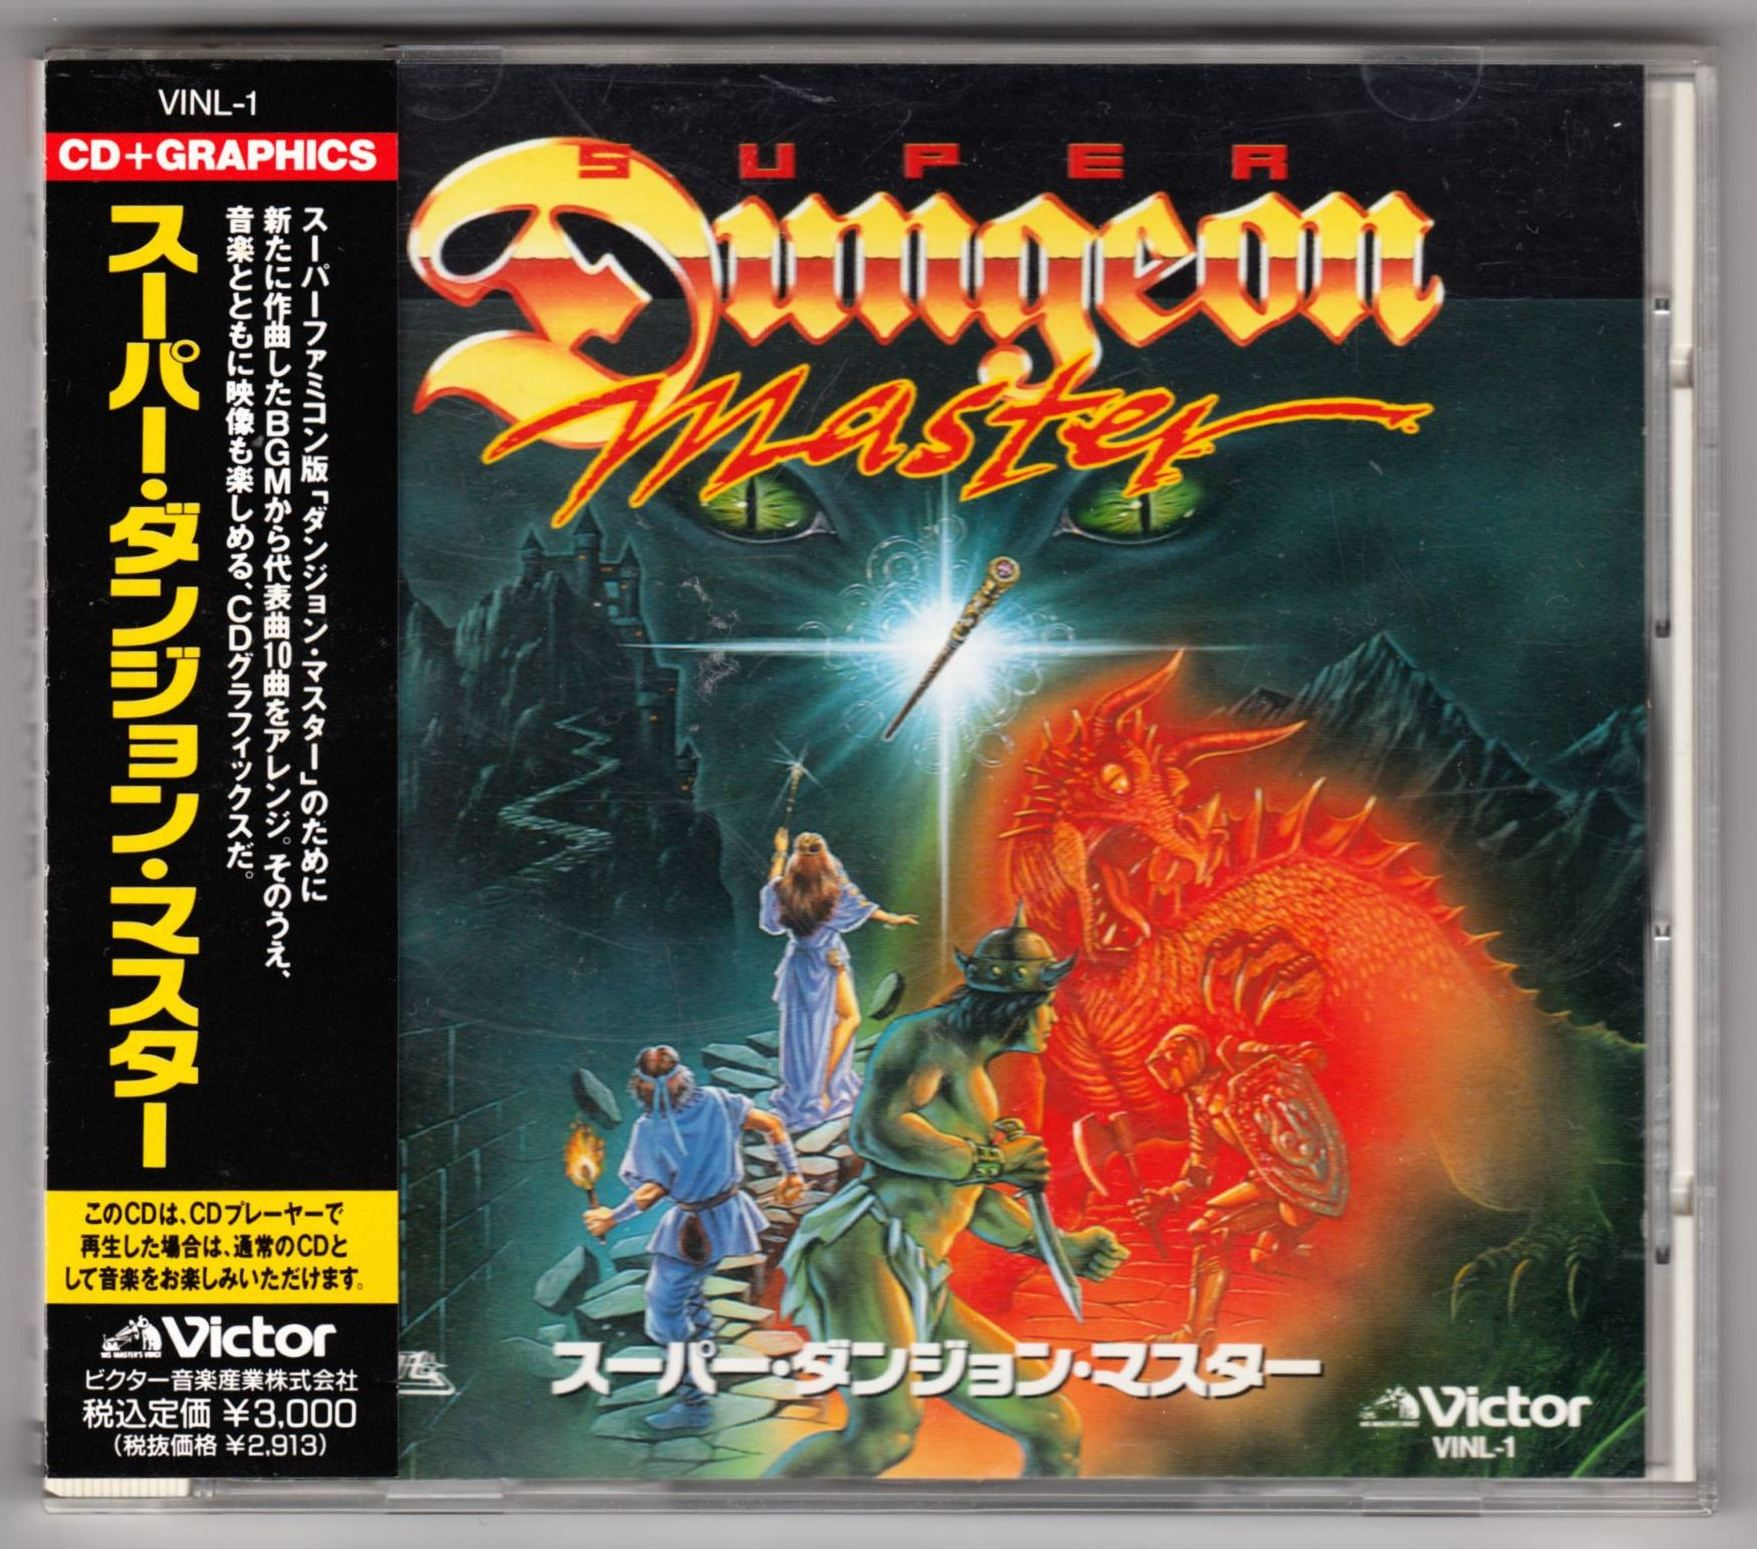 Audio CD - Super Dungeon Master - JP - Box - Front - Scan